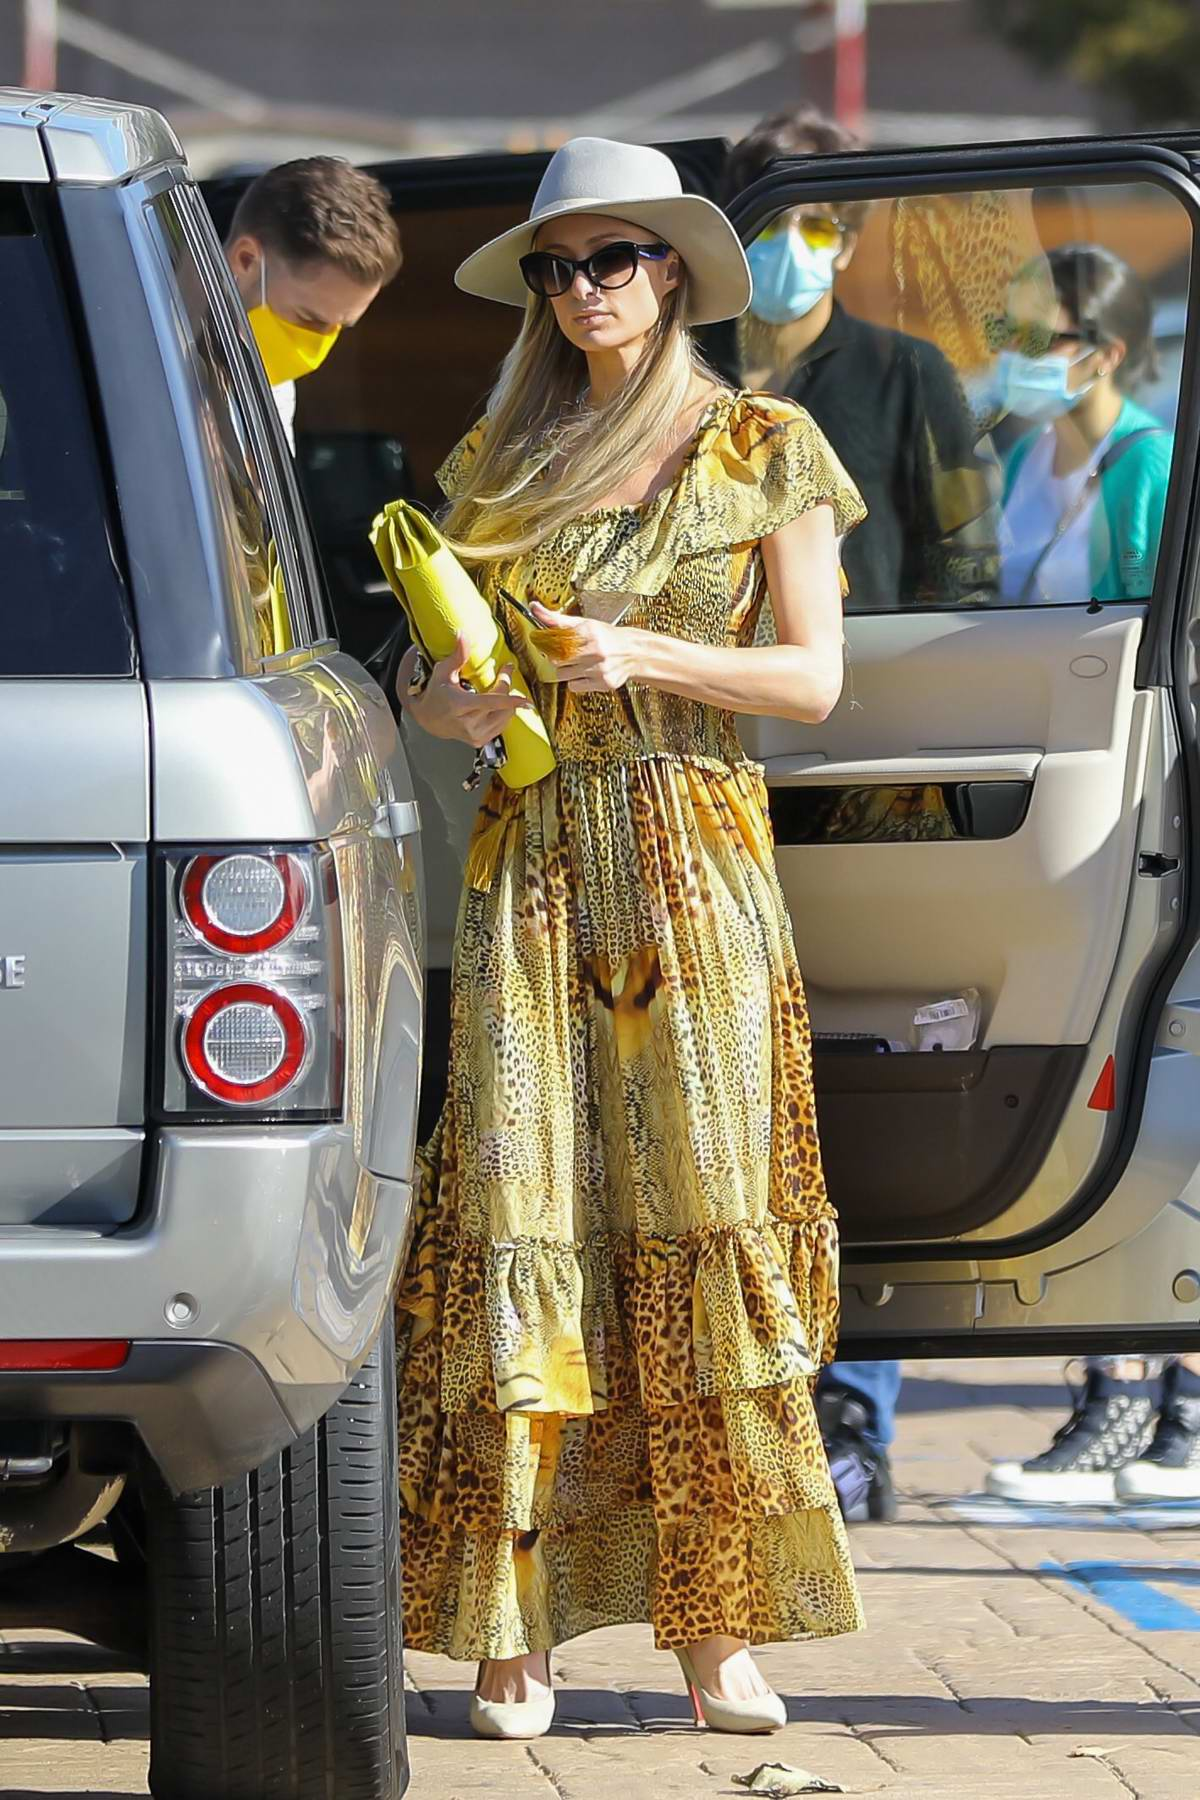 Paris Hilton looks great in a flowing yellow dress while out in Malibu, California